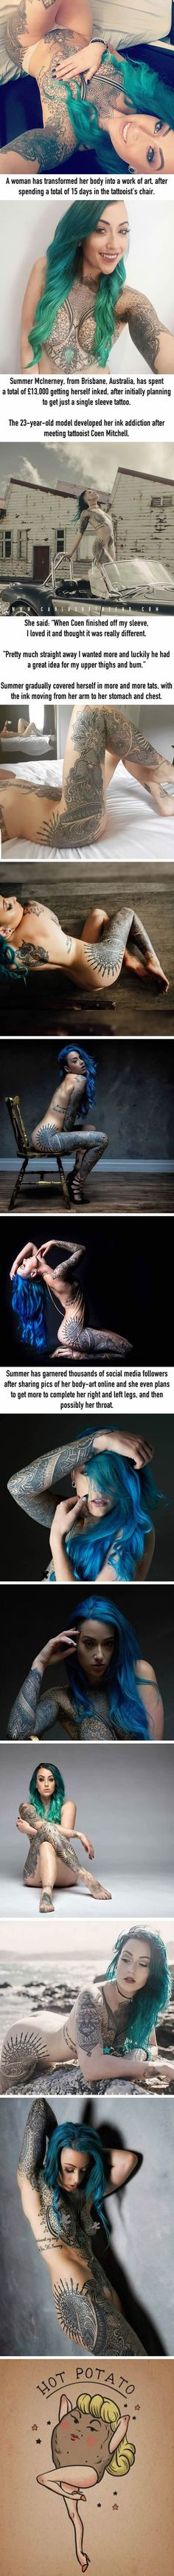 Woman Spends £13,000 To Turn Herself Into A Work Of Art - 9GAG